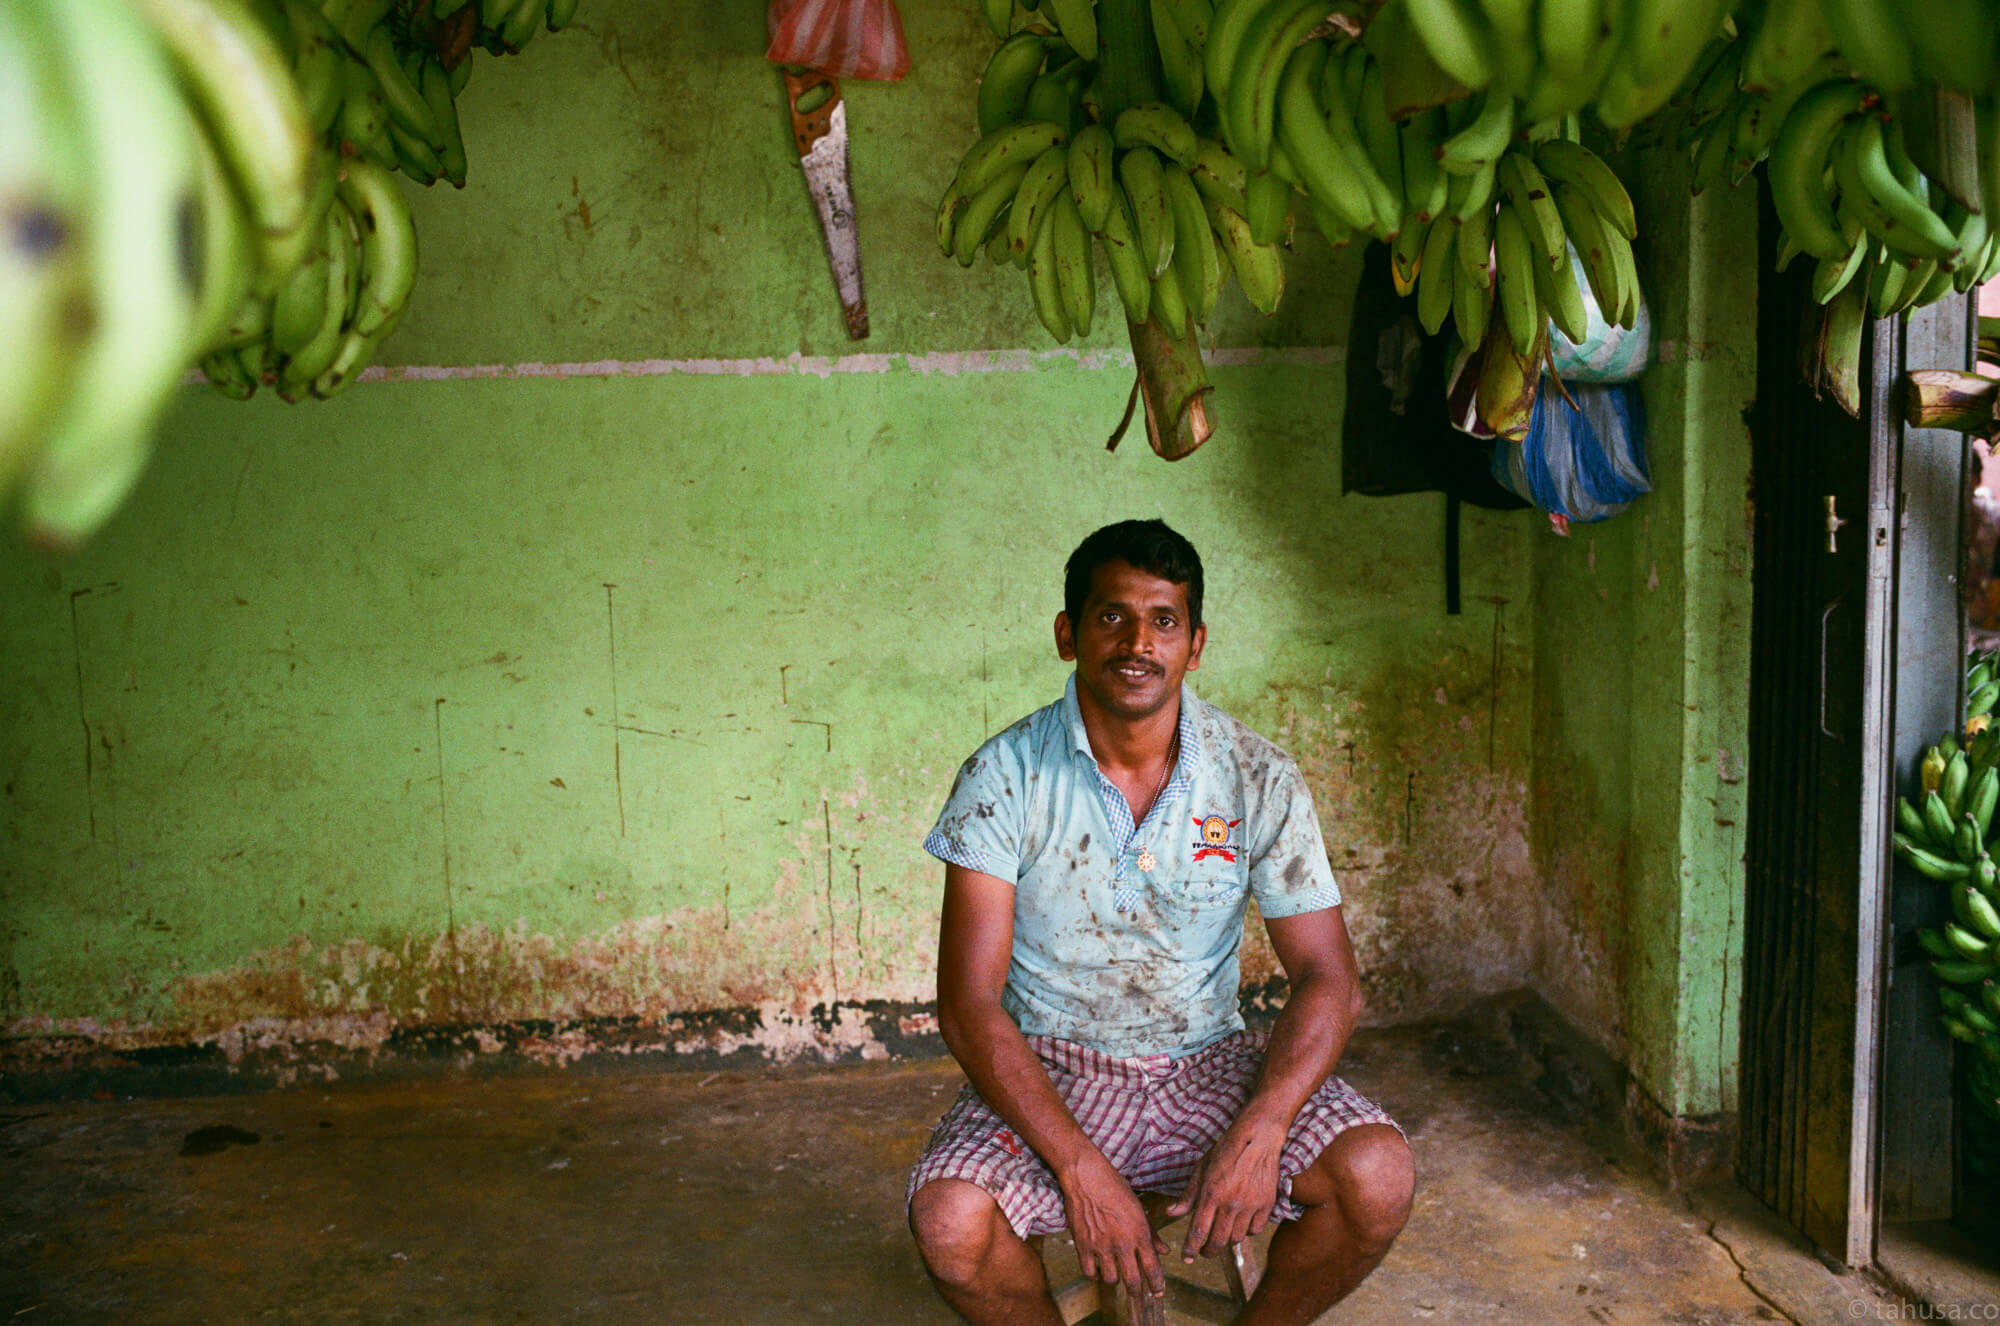 banana-store-posing-inside-斯里蘭卡-Colombo-pettah-market-manning-sri-lanka-sri-lankan-nuwara-eliya-colombo-using-film-camera-with-analog-fuji-superia-premium-400-iso400-with-leica-summilux-35mm-f1.4-asph-fle